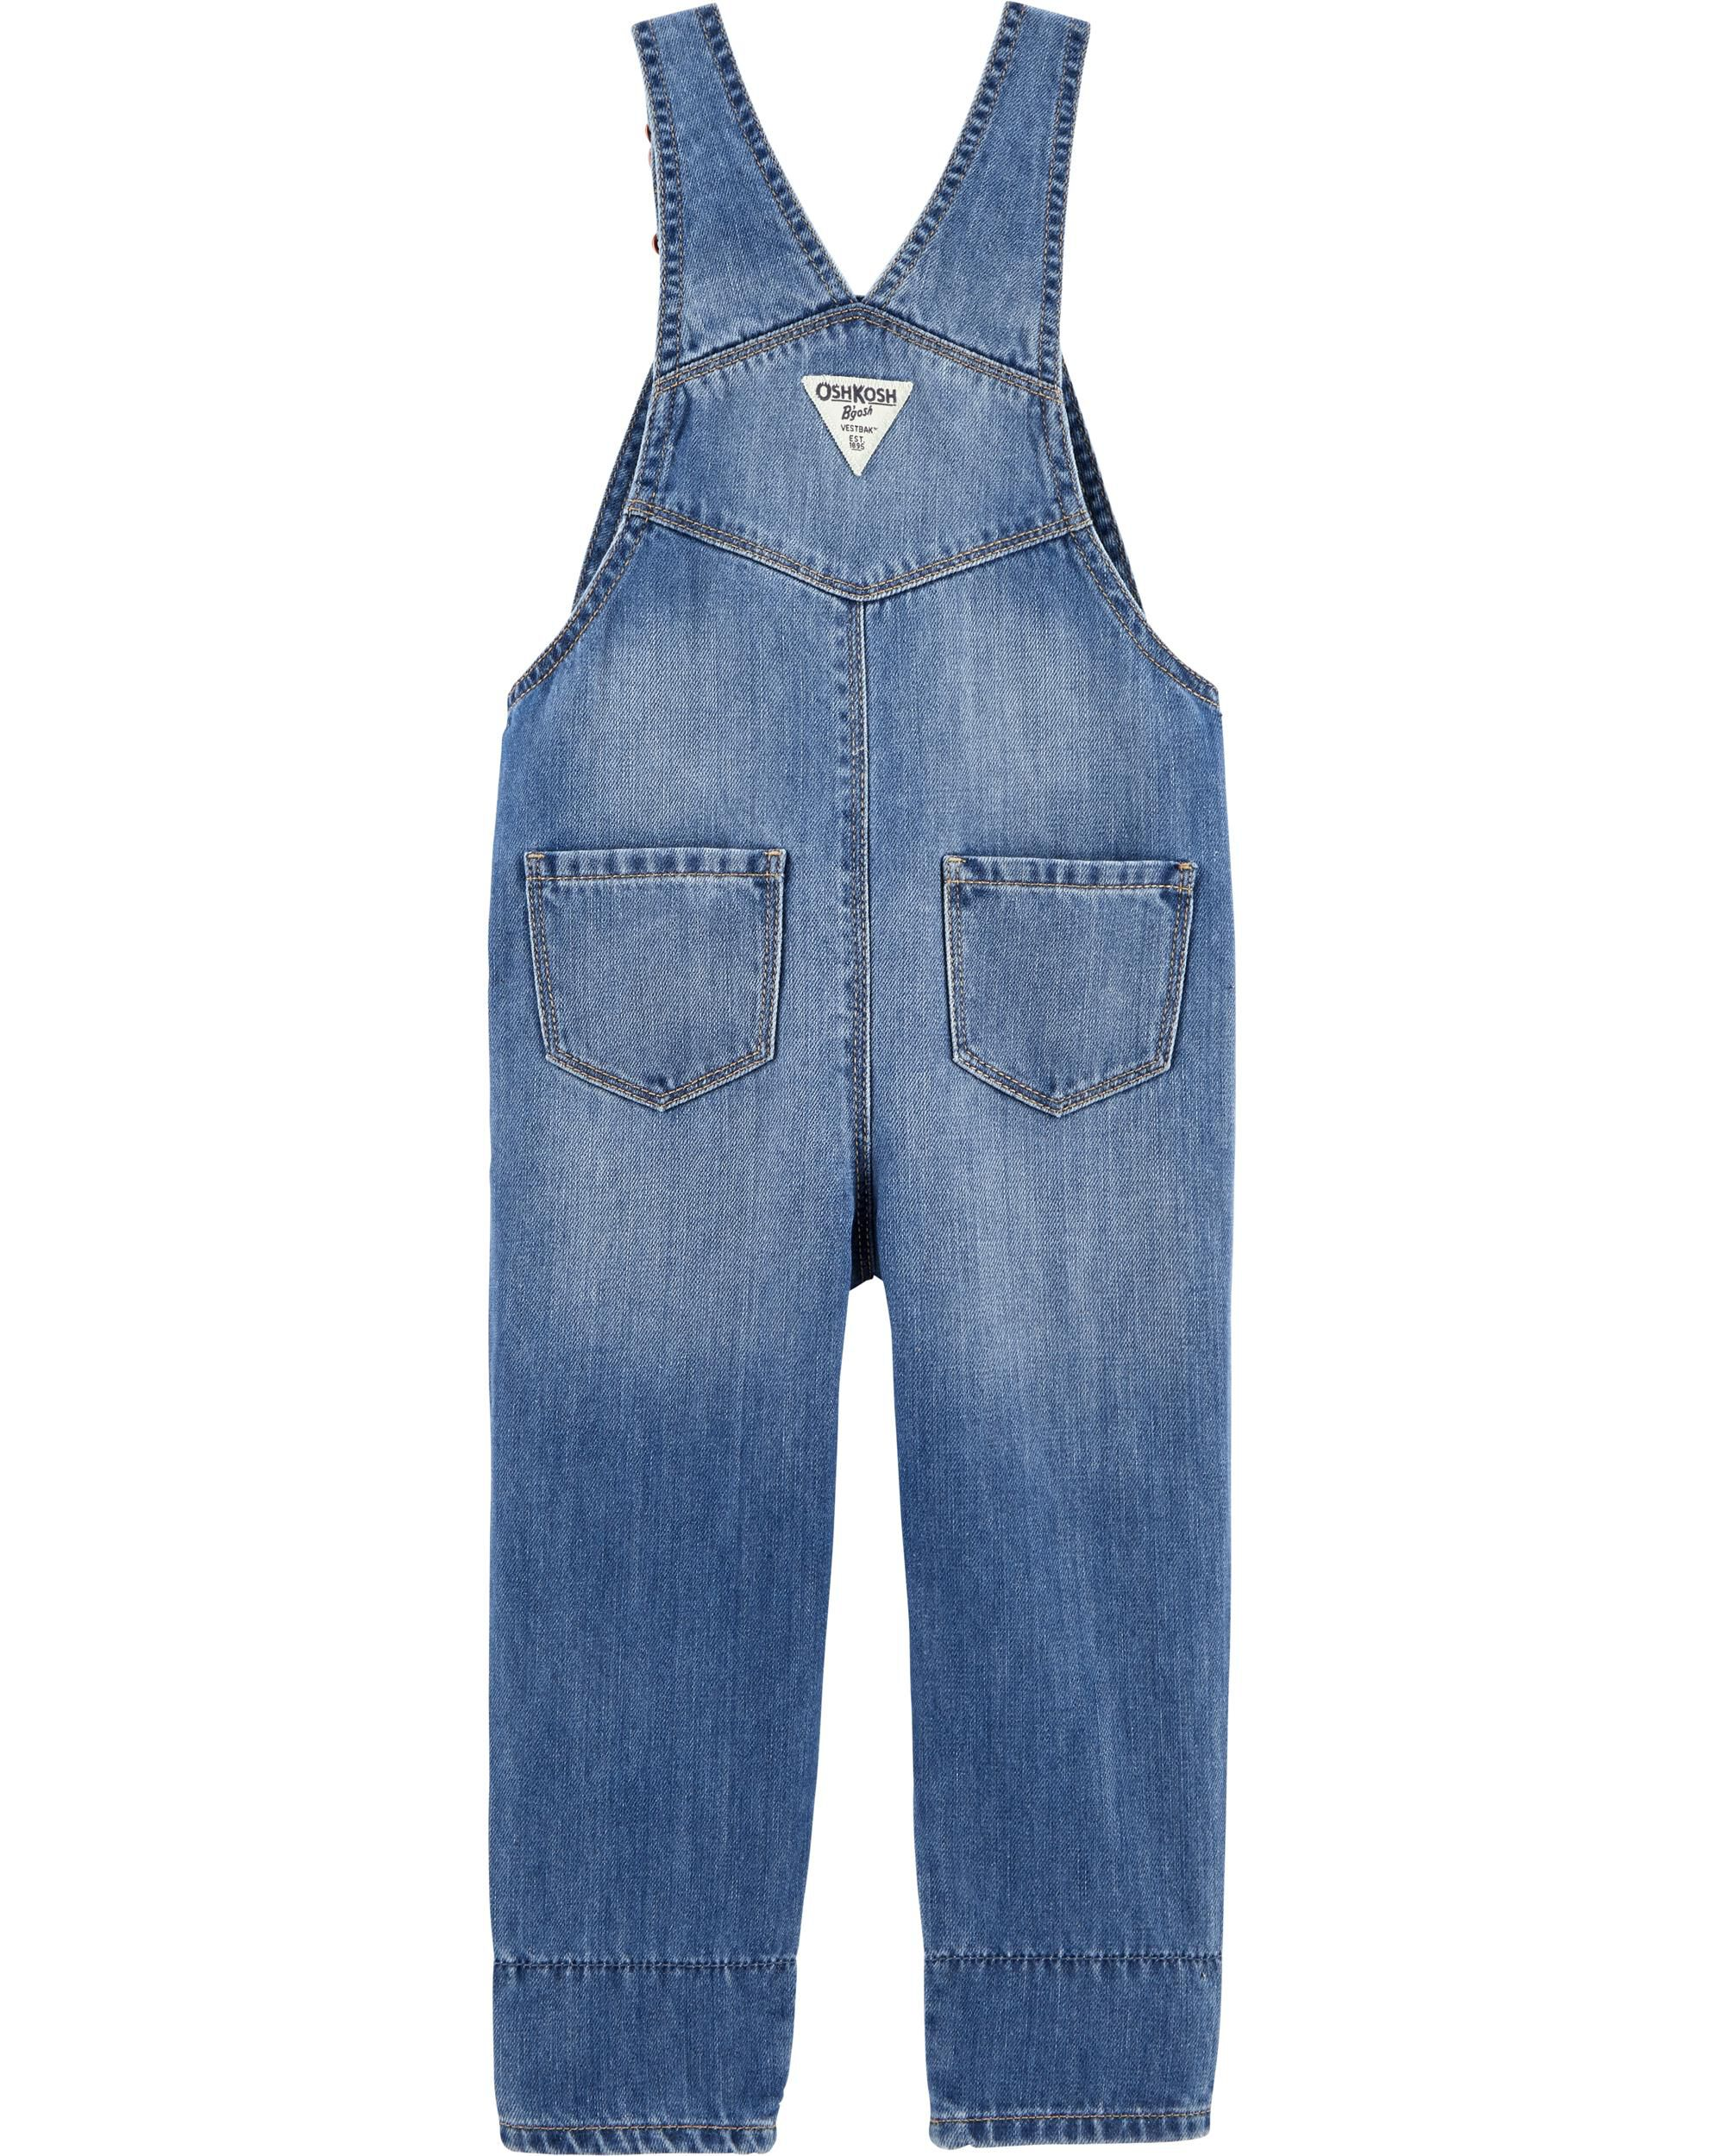 The Cheapest Price Next Baby Boy Girl Denim Look Dungarees With Stars Baby Outfits & Sets